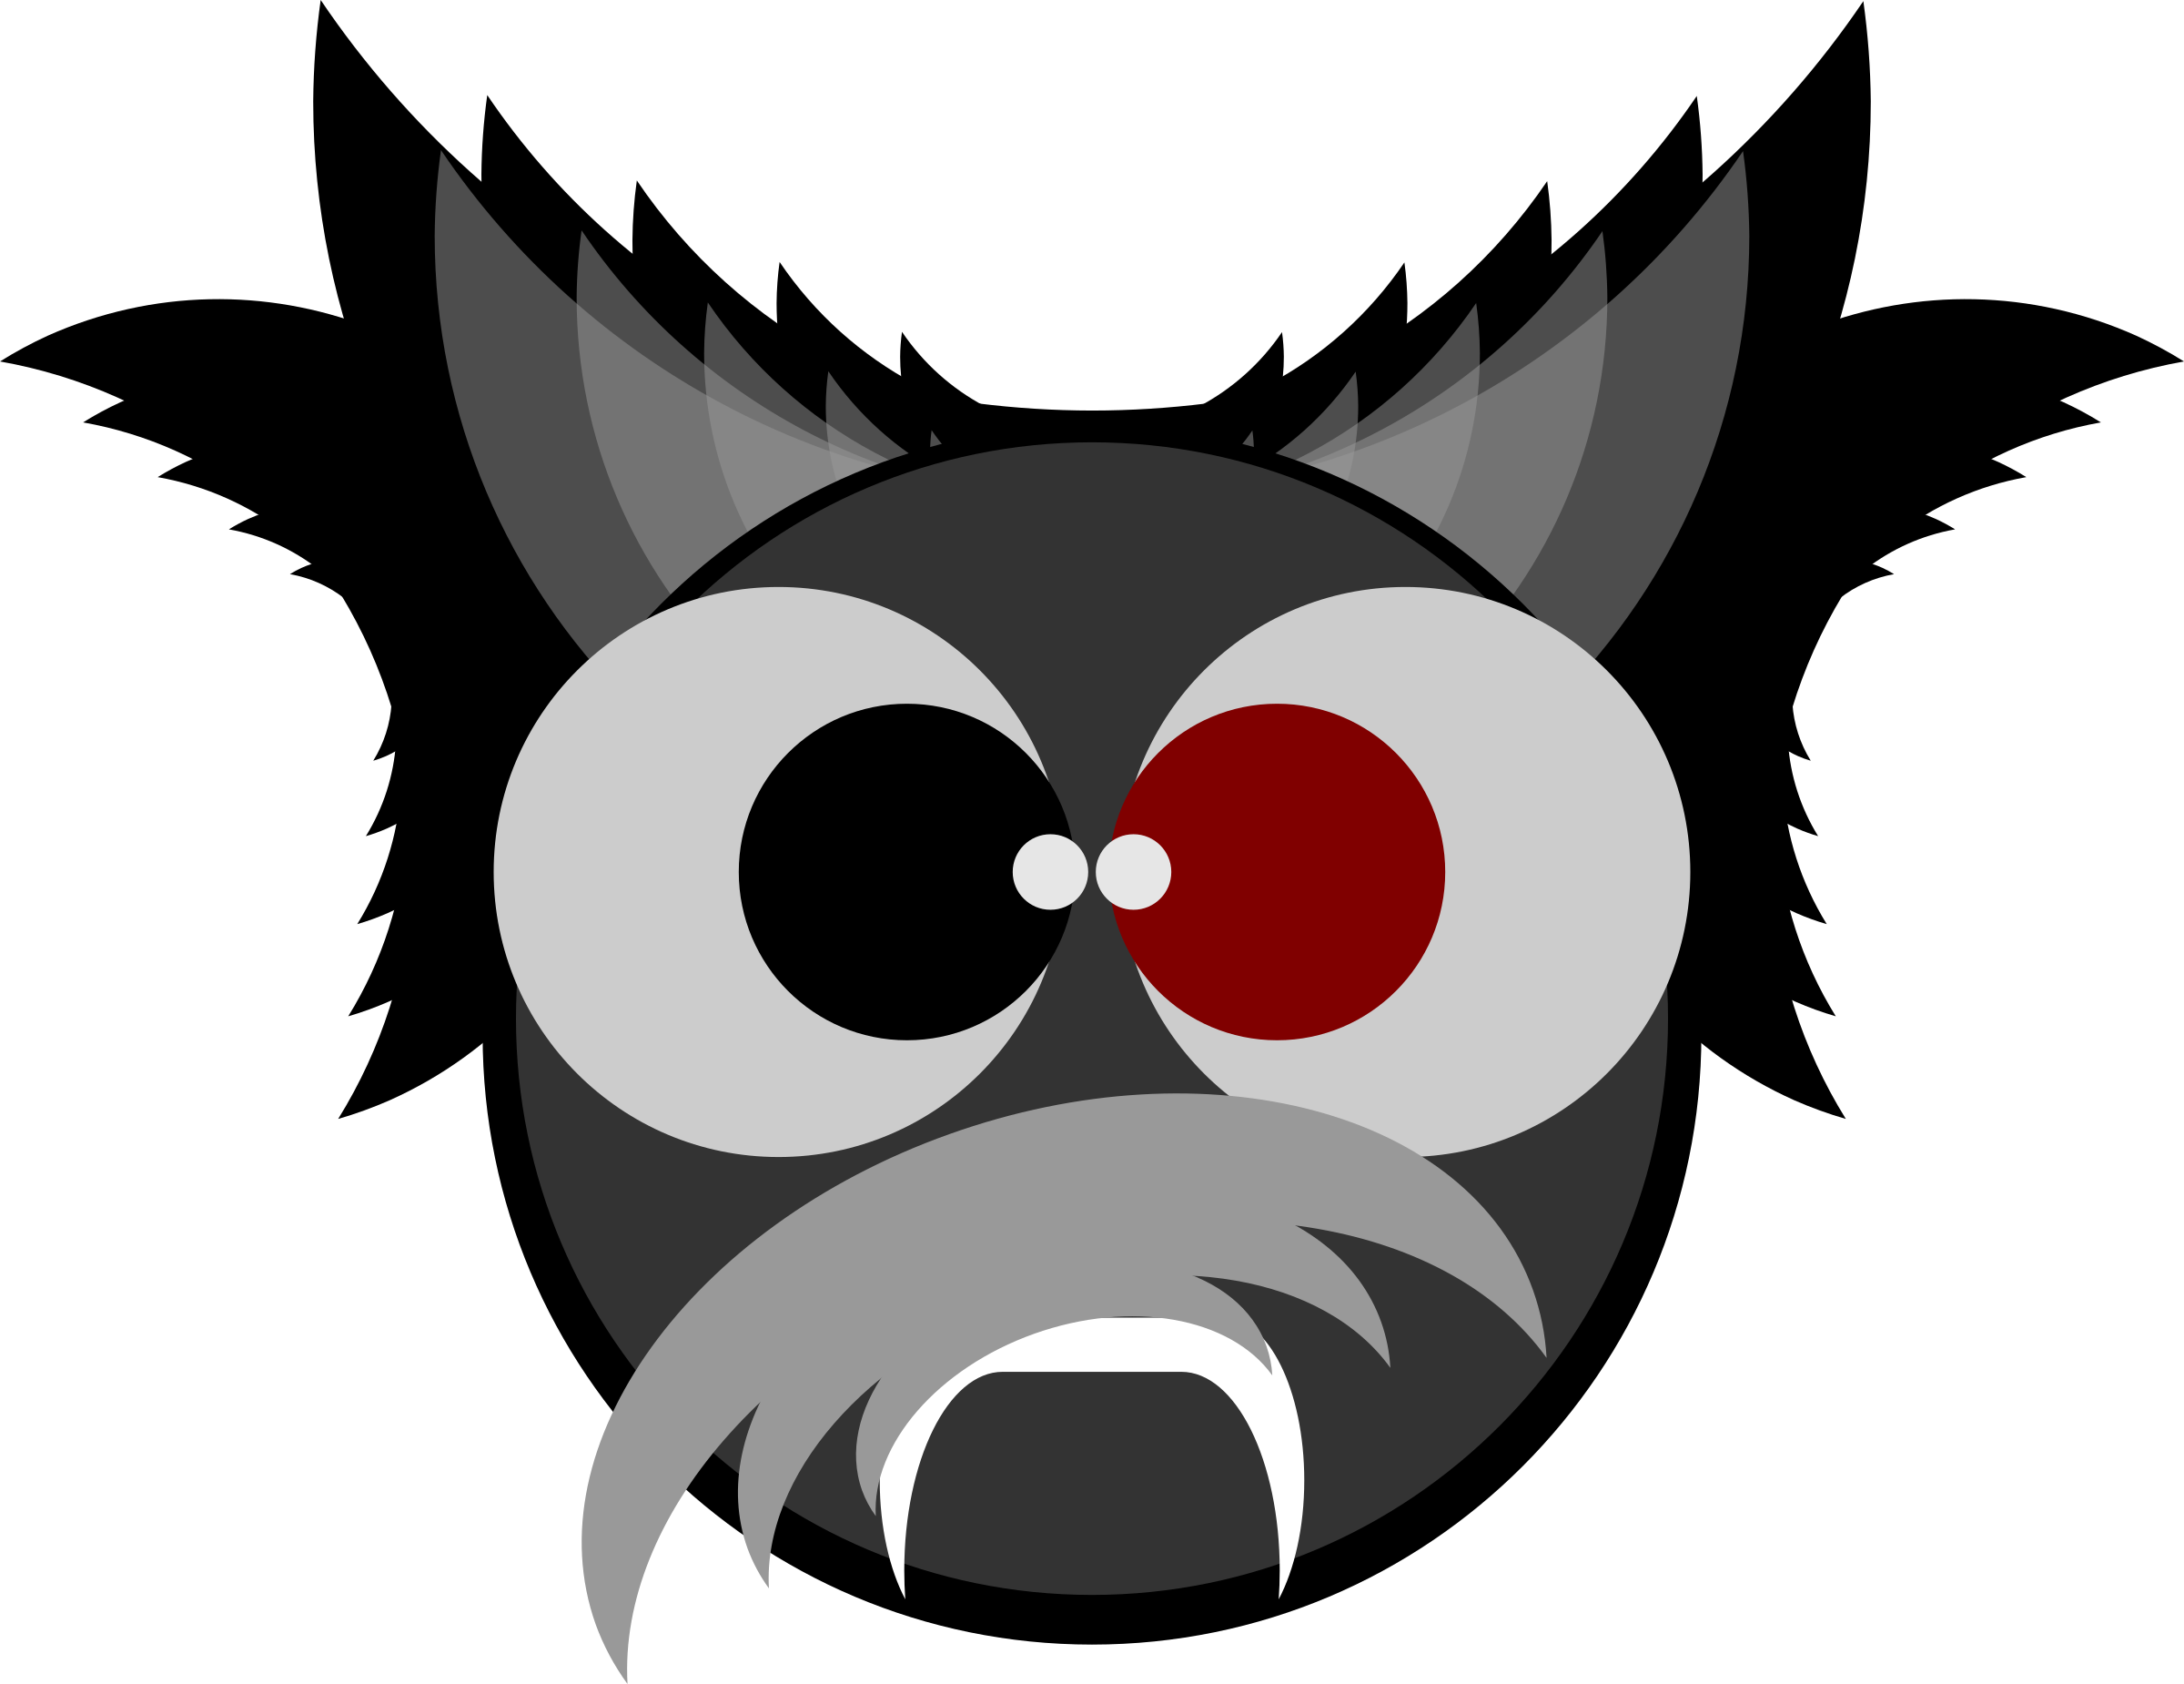 Wing clipart old. Roll vampire icons png